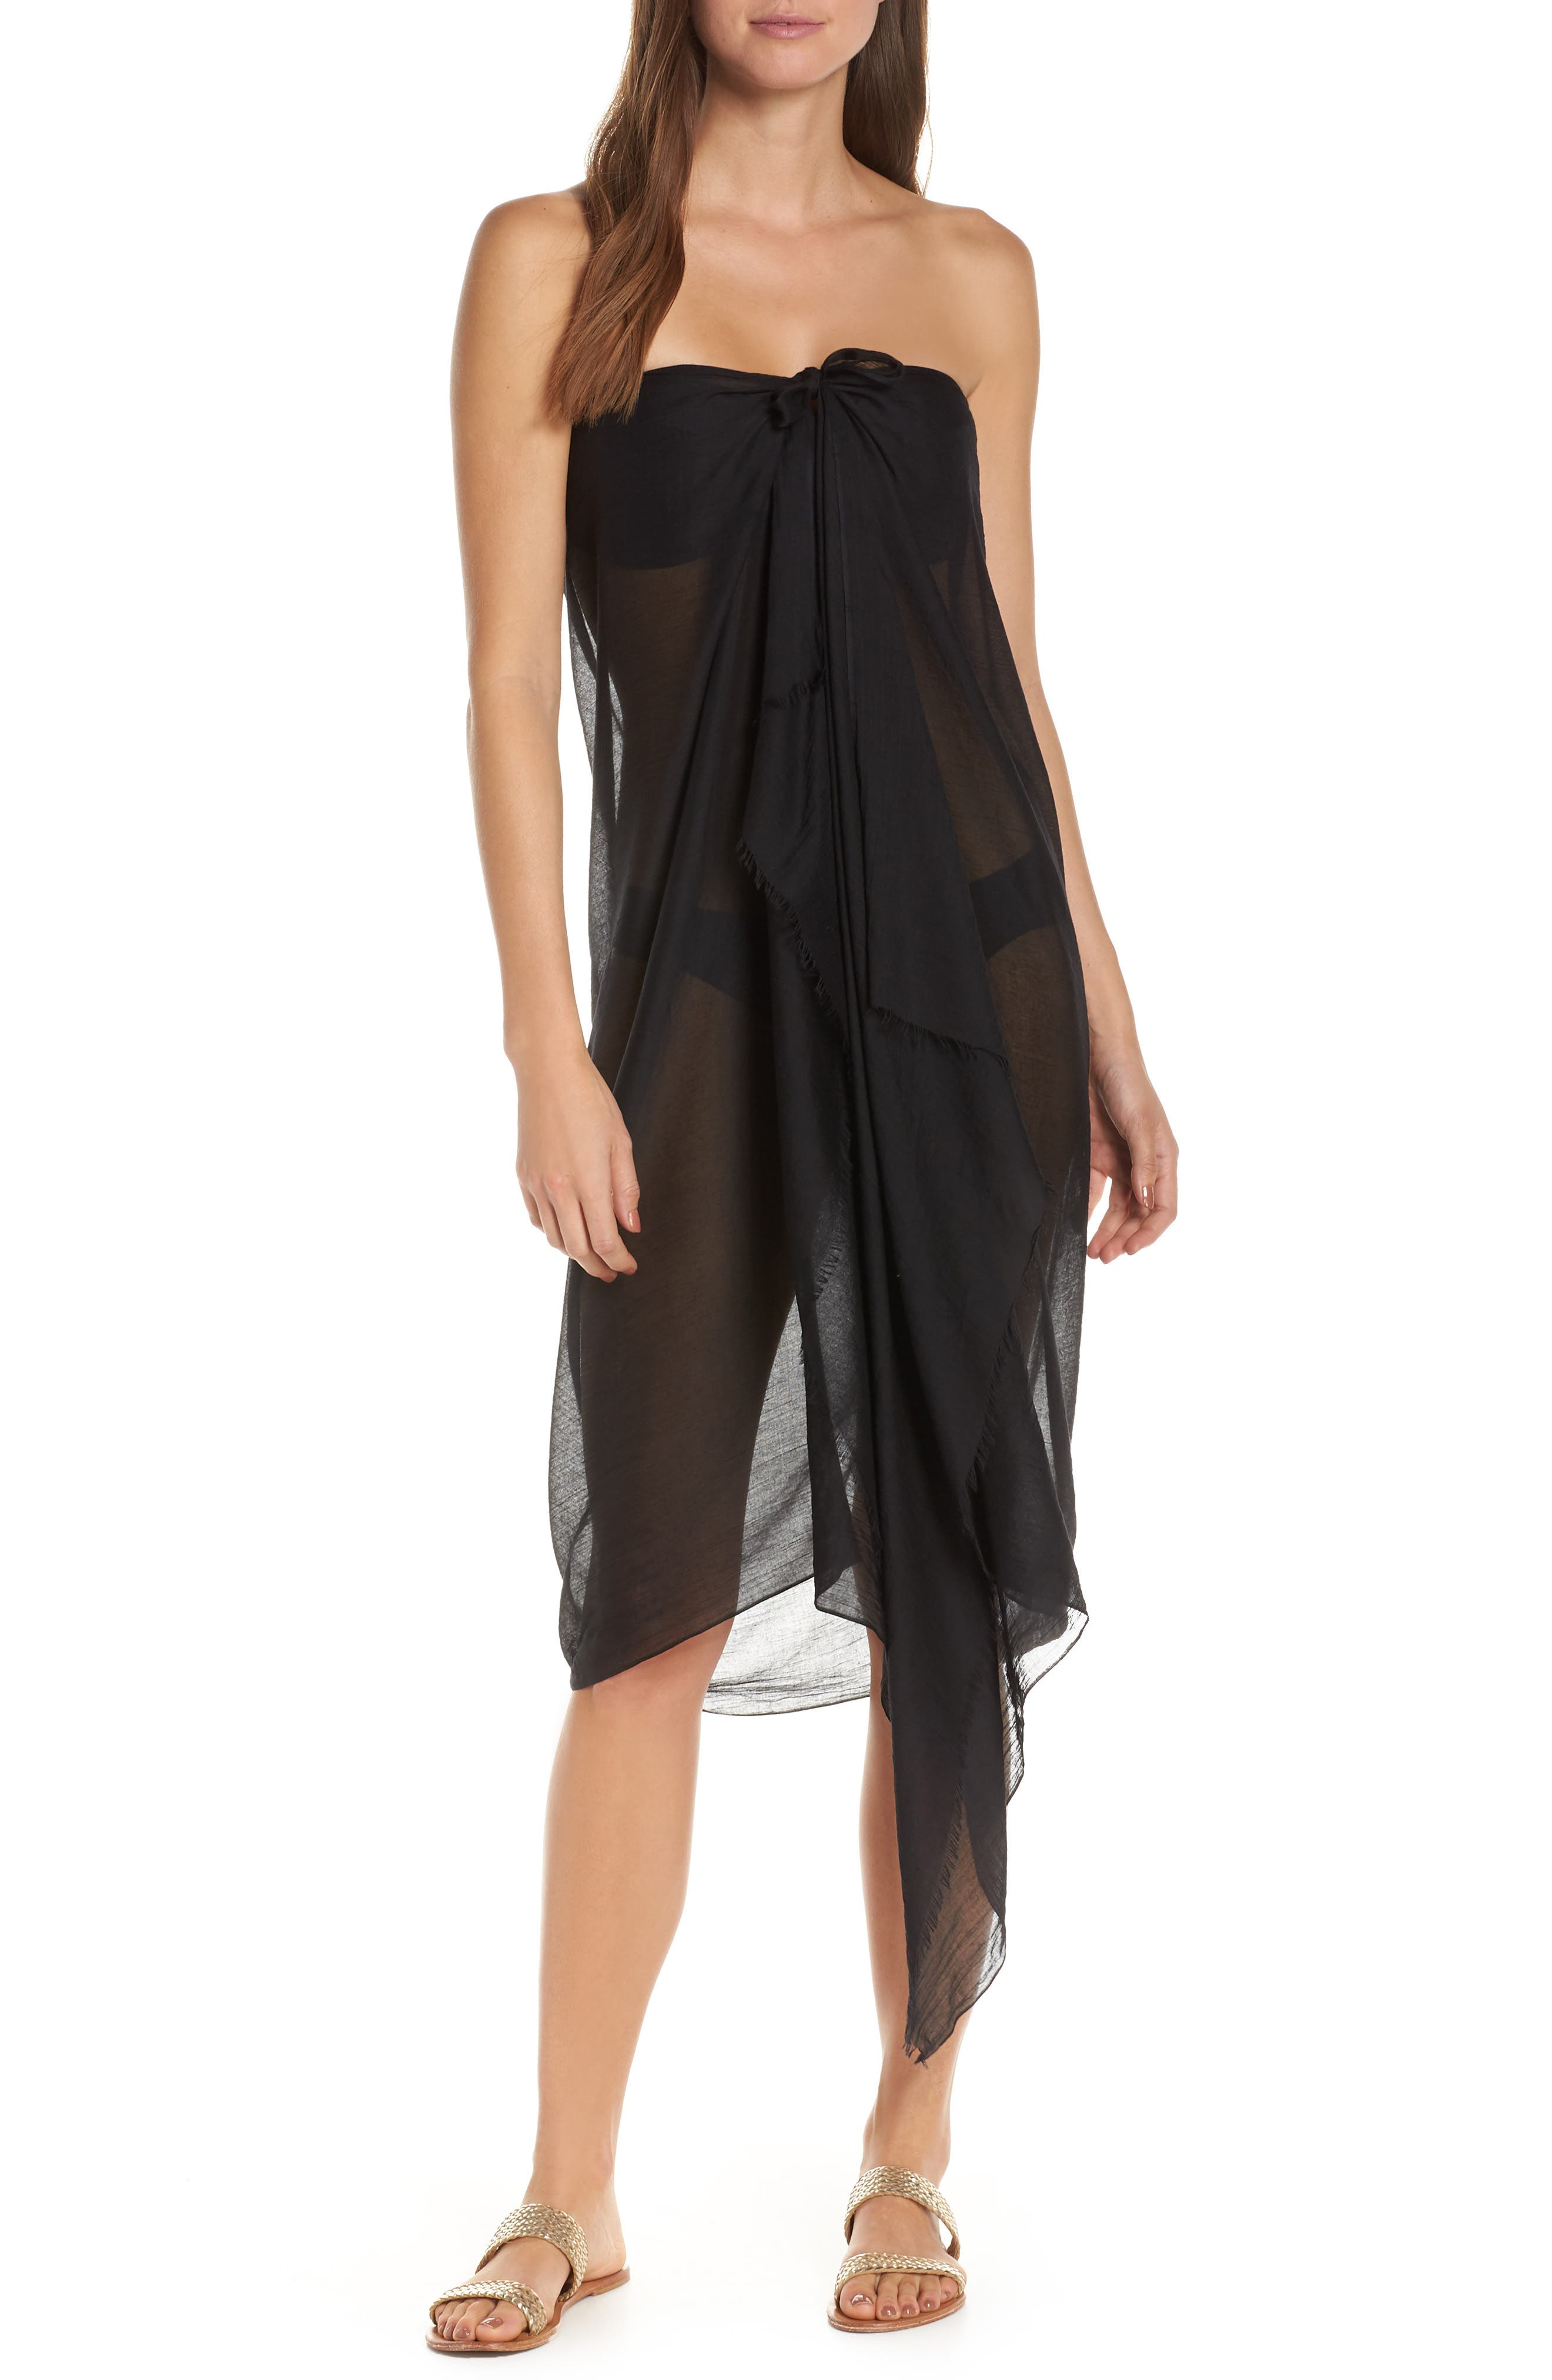 POOL TO PARTY,                             Sarong Cover-Up,                             Alternate thumbnail 2, color,                             001